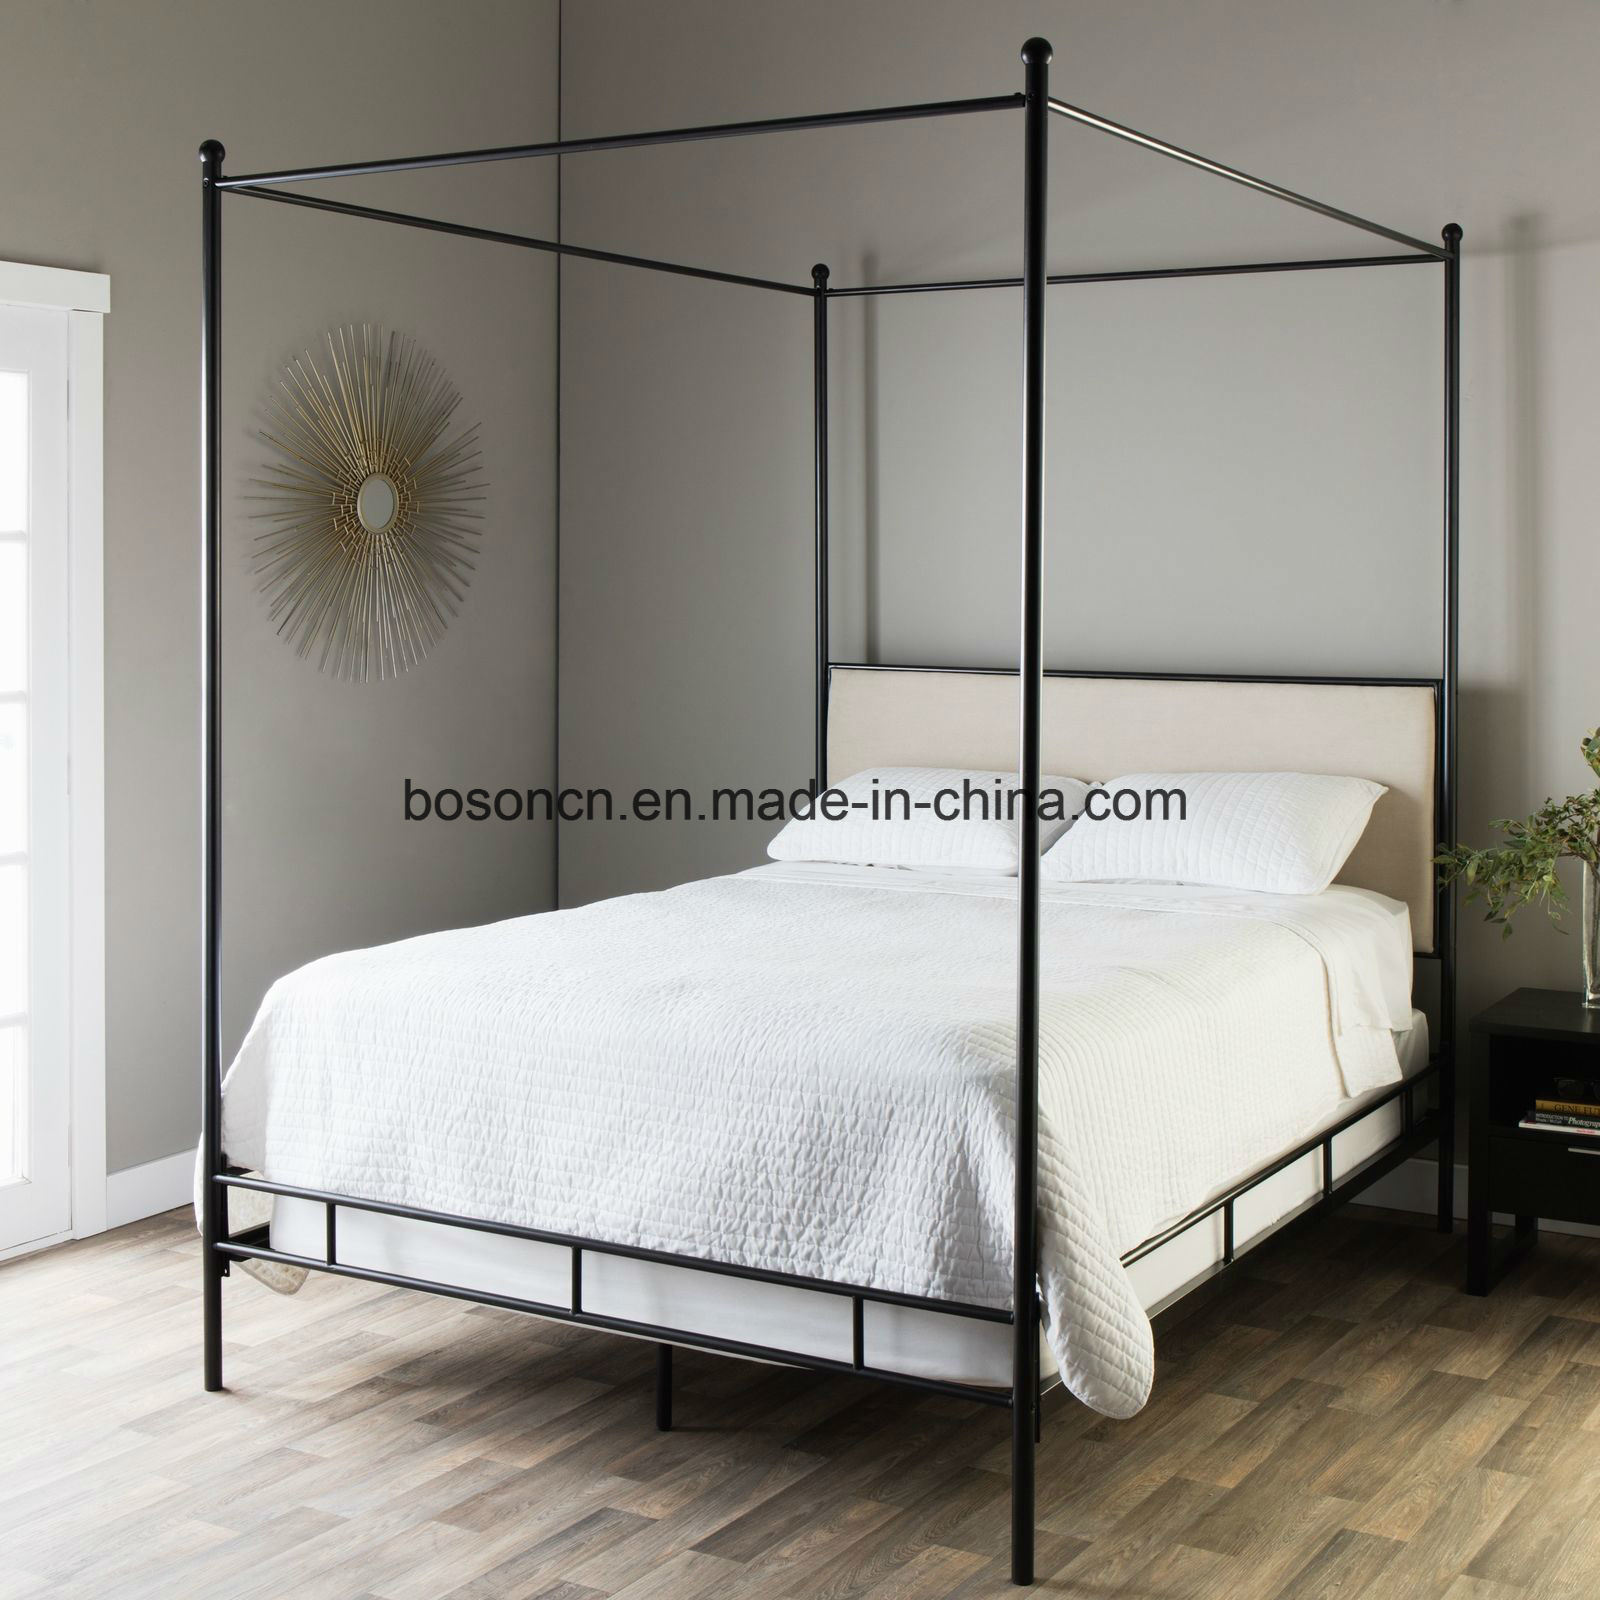 - China New Style Metal Canopy Bed - China Metal Canopy Bed, Metal